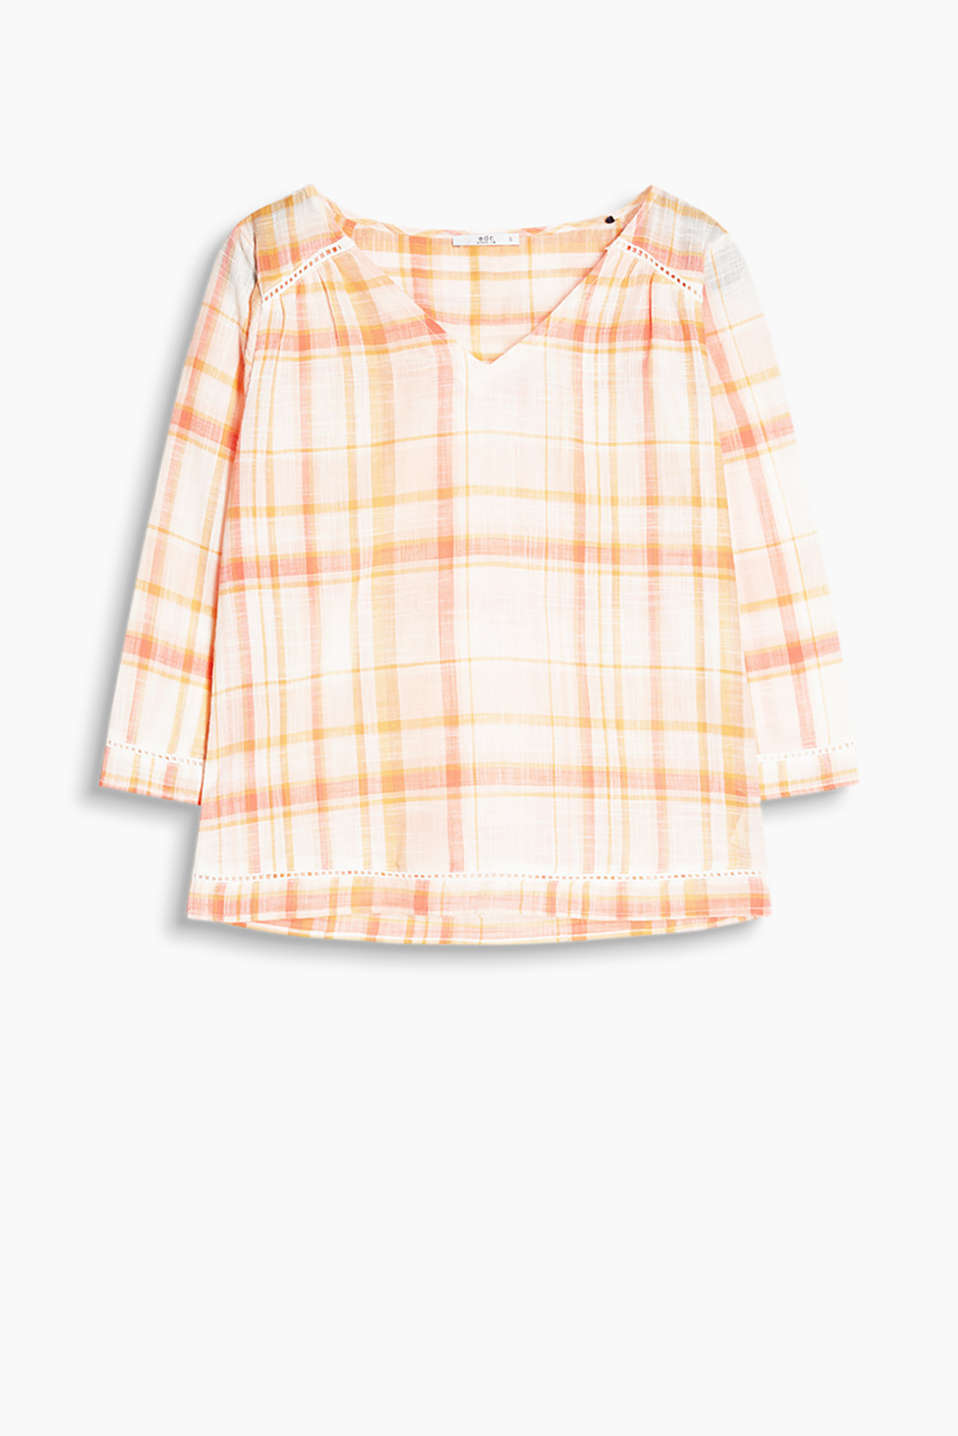 Feminine check blouse in a tunic style with broderie anglaise